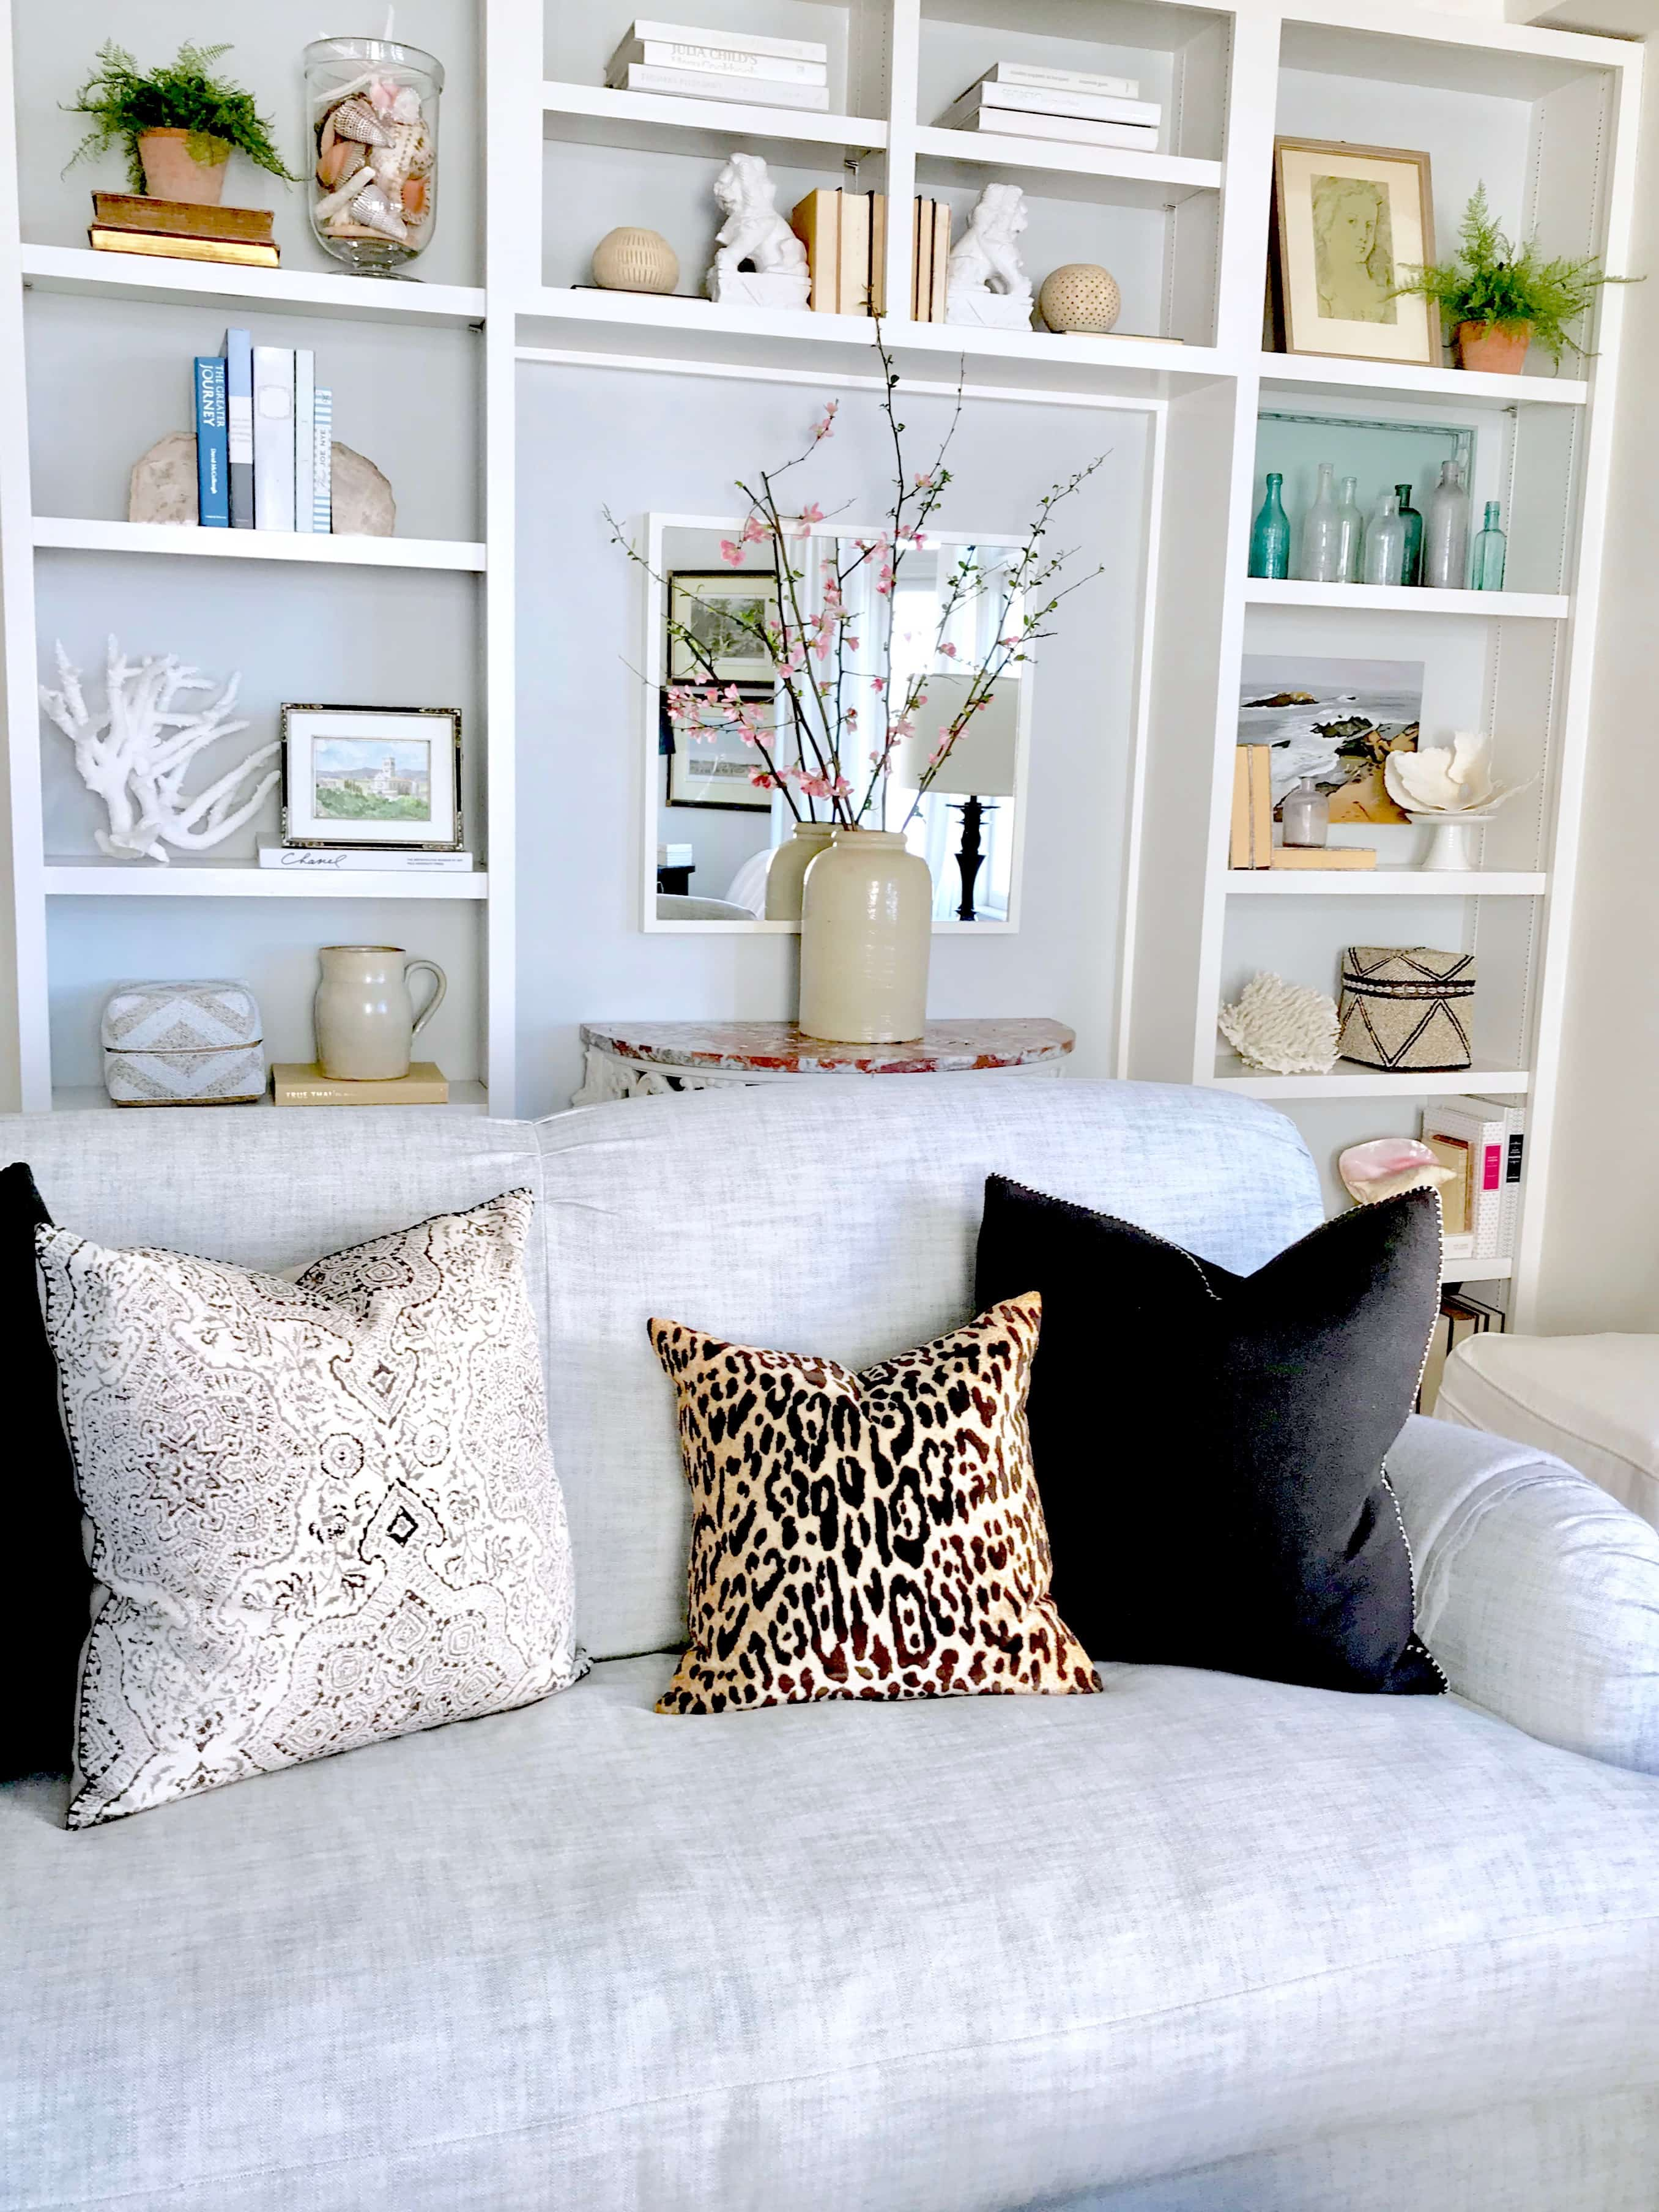 Living Room with pillows and styled shelves - Classic Casual Home